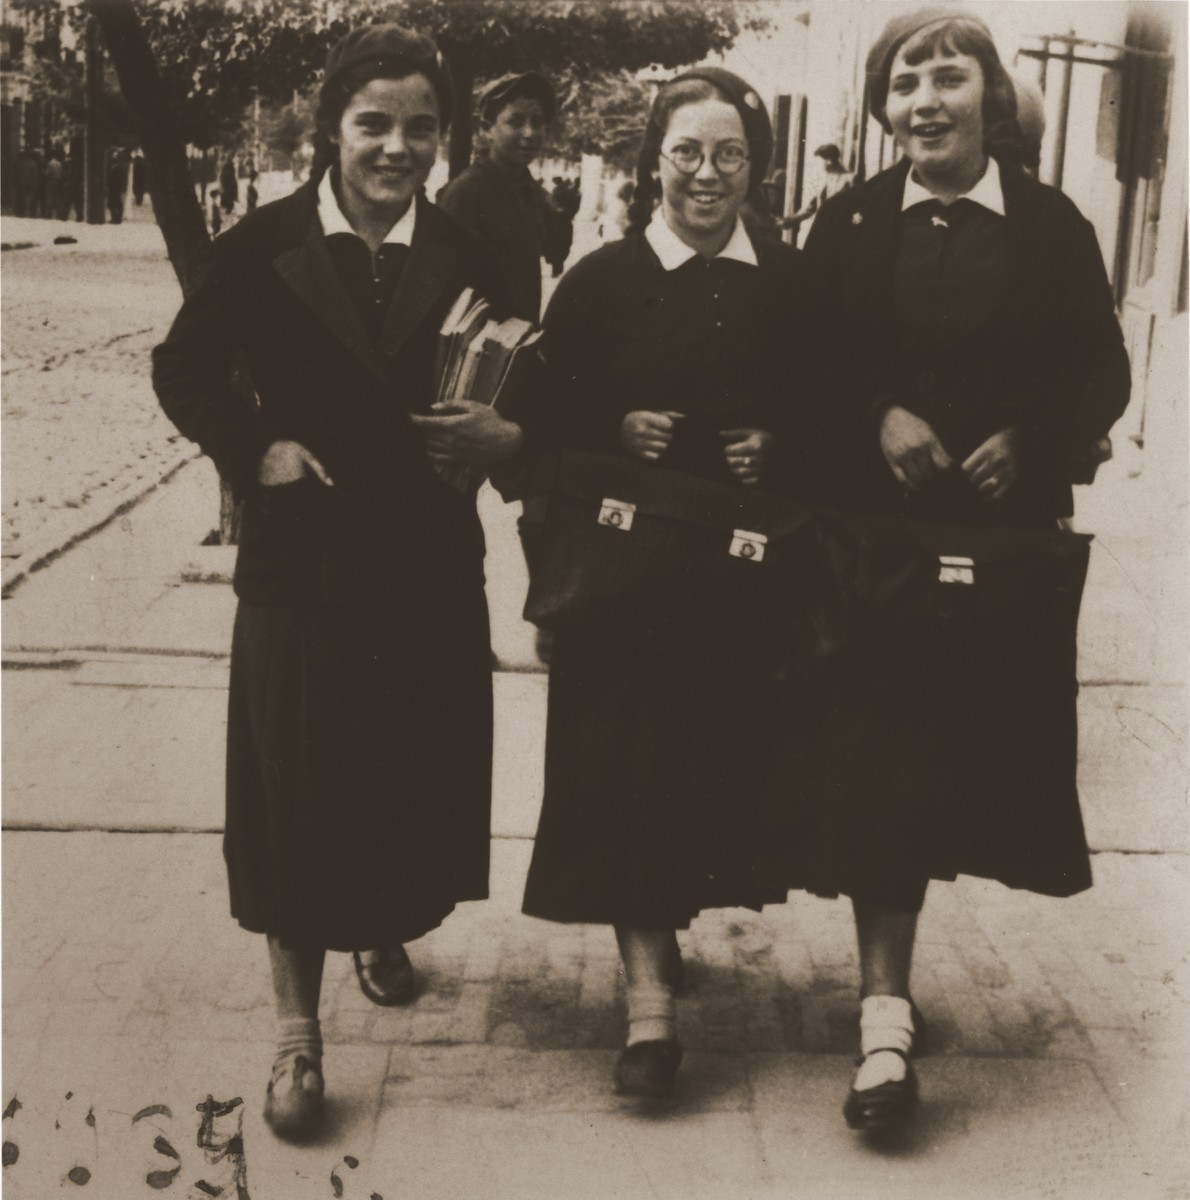 Felicja Bernard and two classmates walk home from school dressed in their school uniforms.